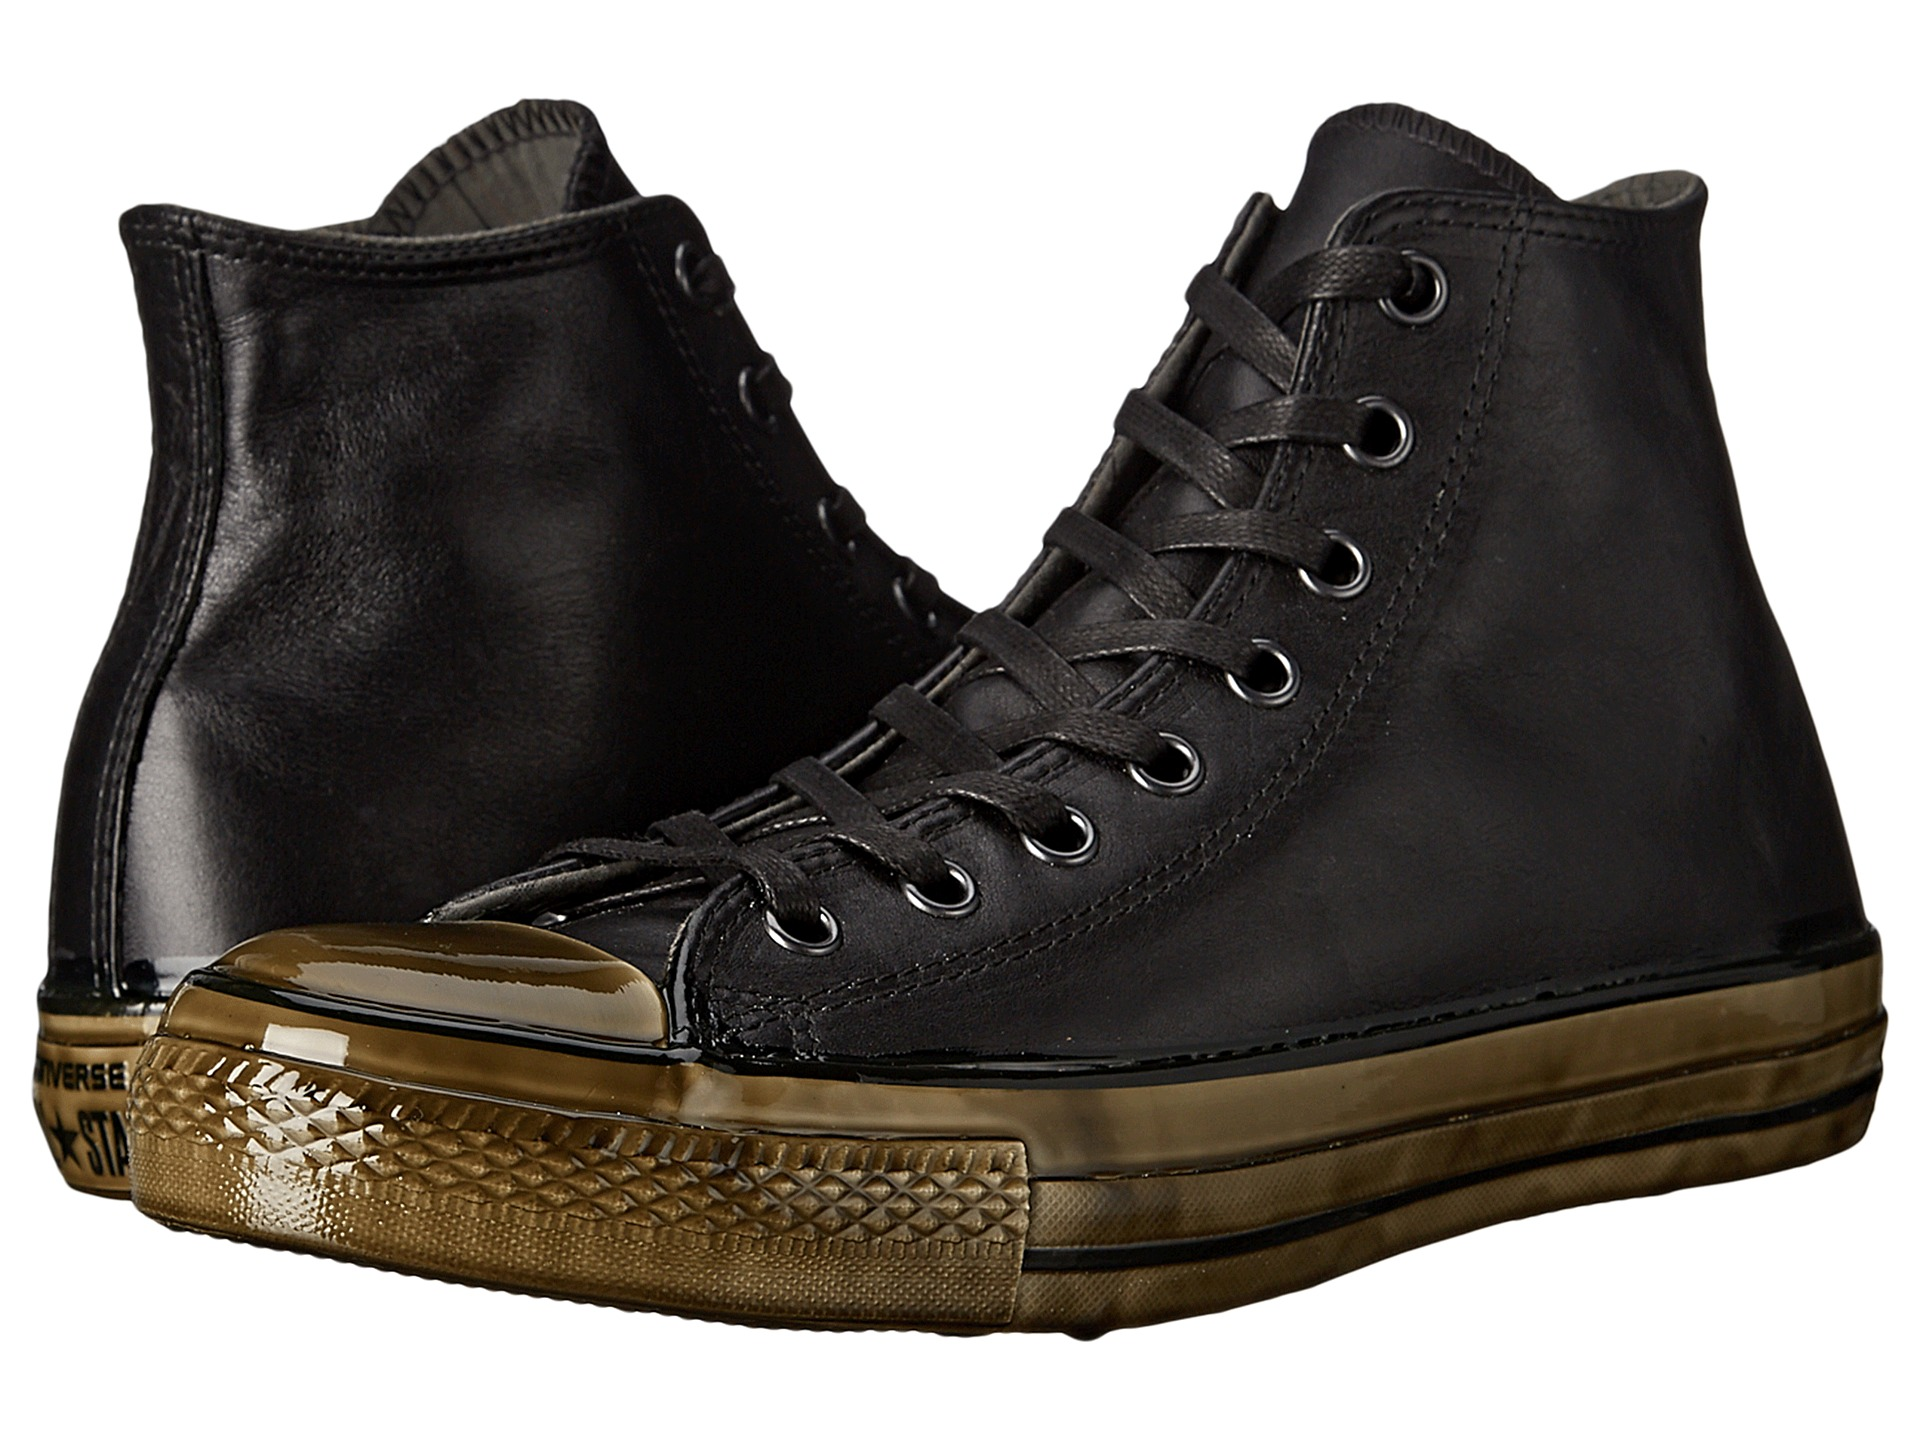 converse john varvatos converse by john varvatos chuck taylor all star dipped outsole hi at 6pm.com NBSAKBH